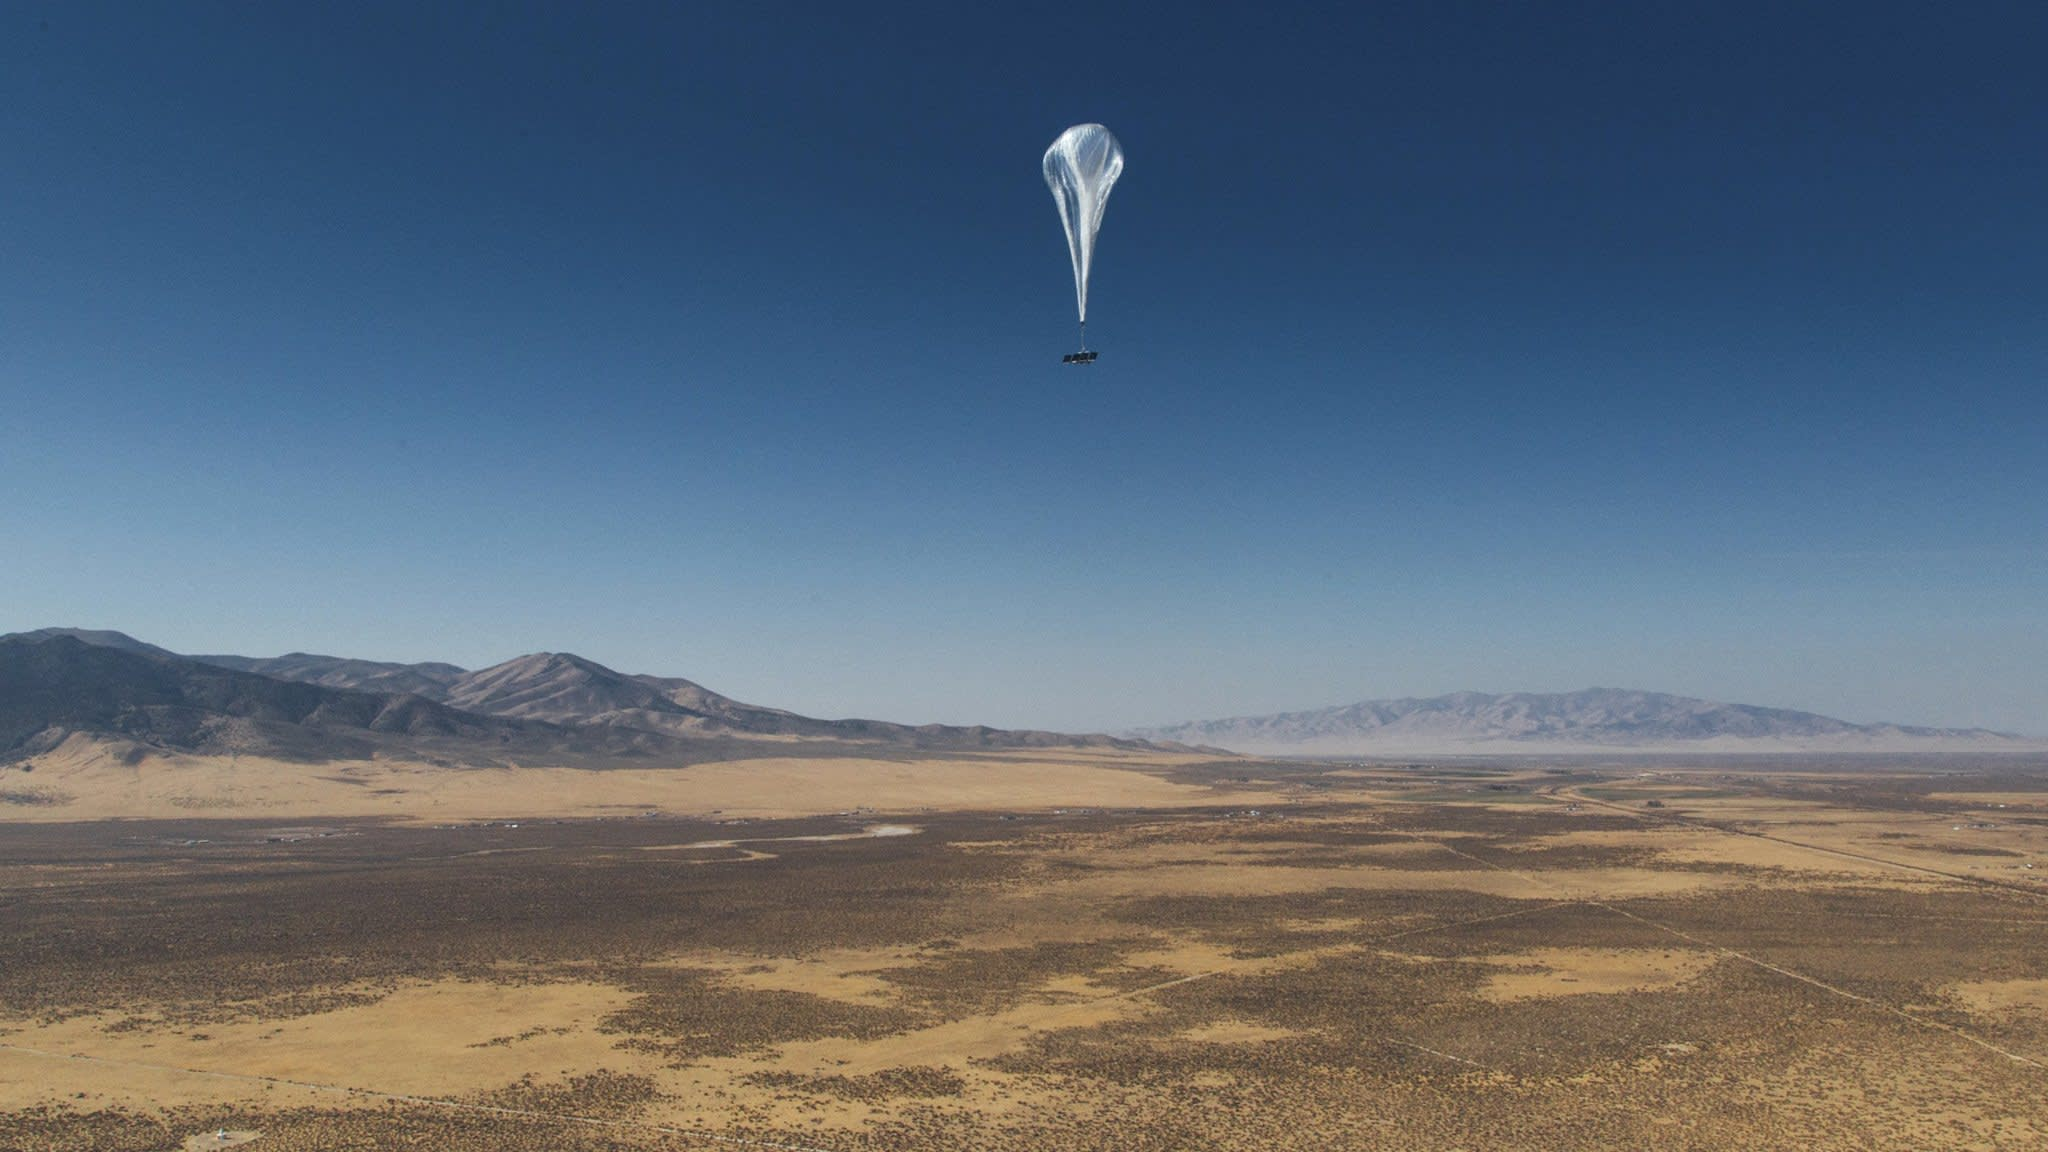 Alphabet's new businesses: internet balloons and delivery drones